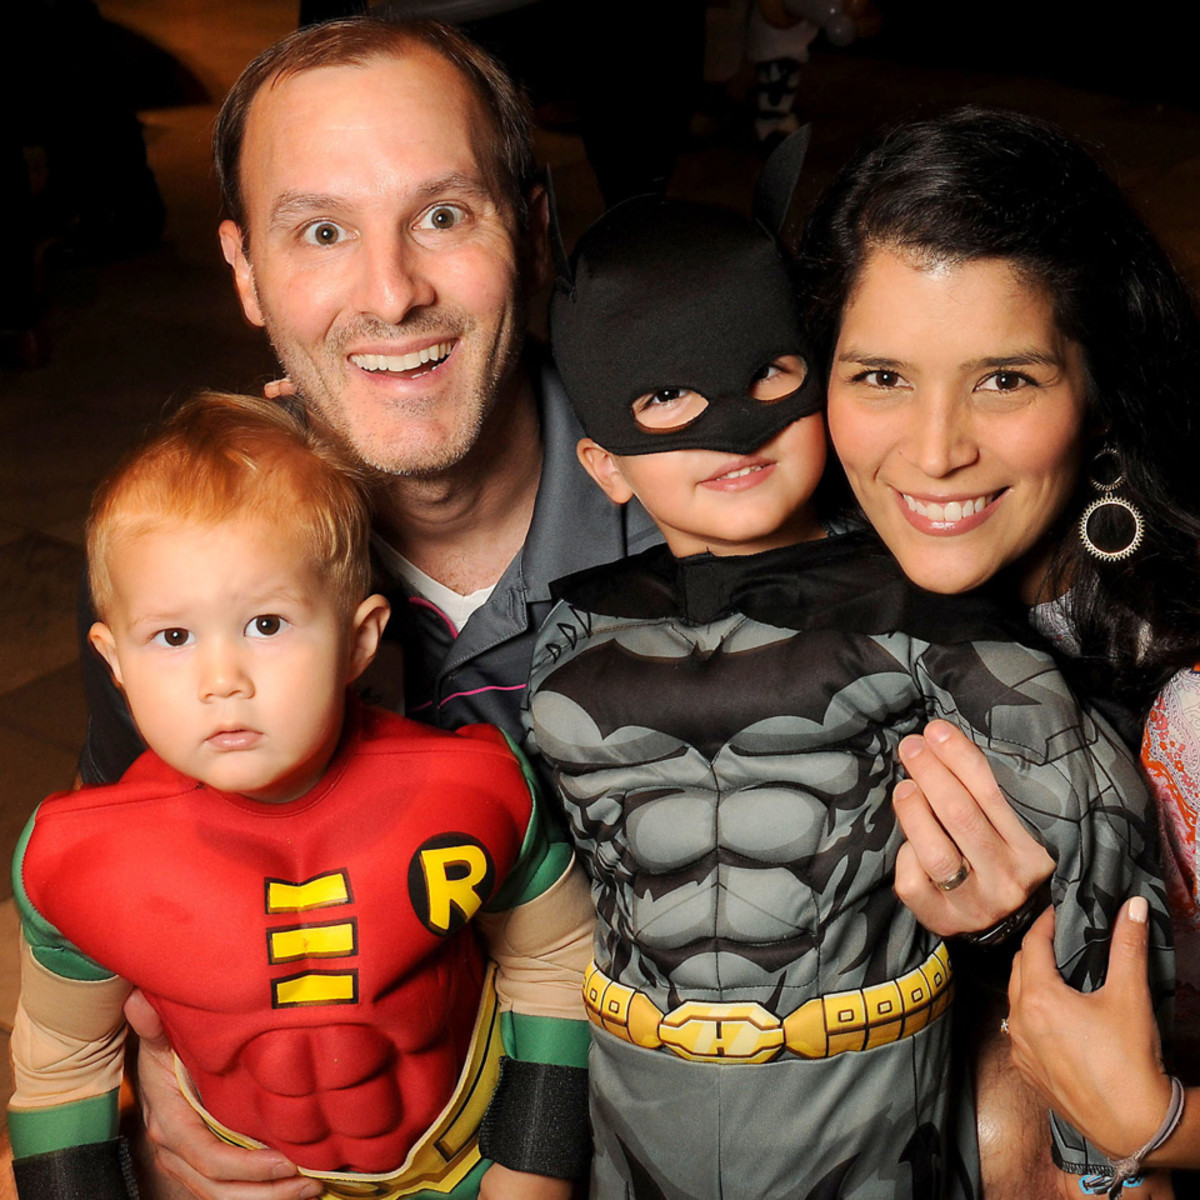 MD Anderson Halloween at the Galleria Ethan, Scott, Eli and Monica Rose